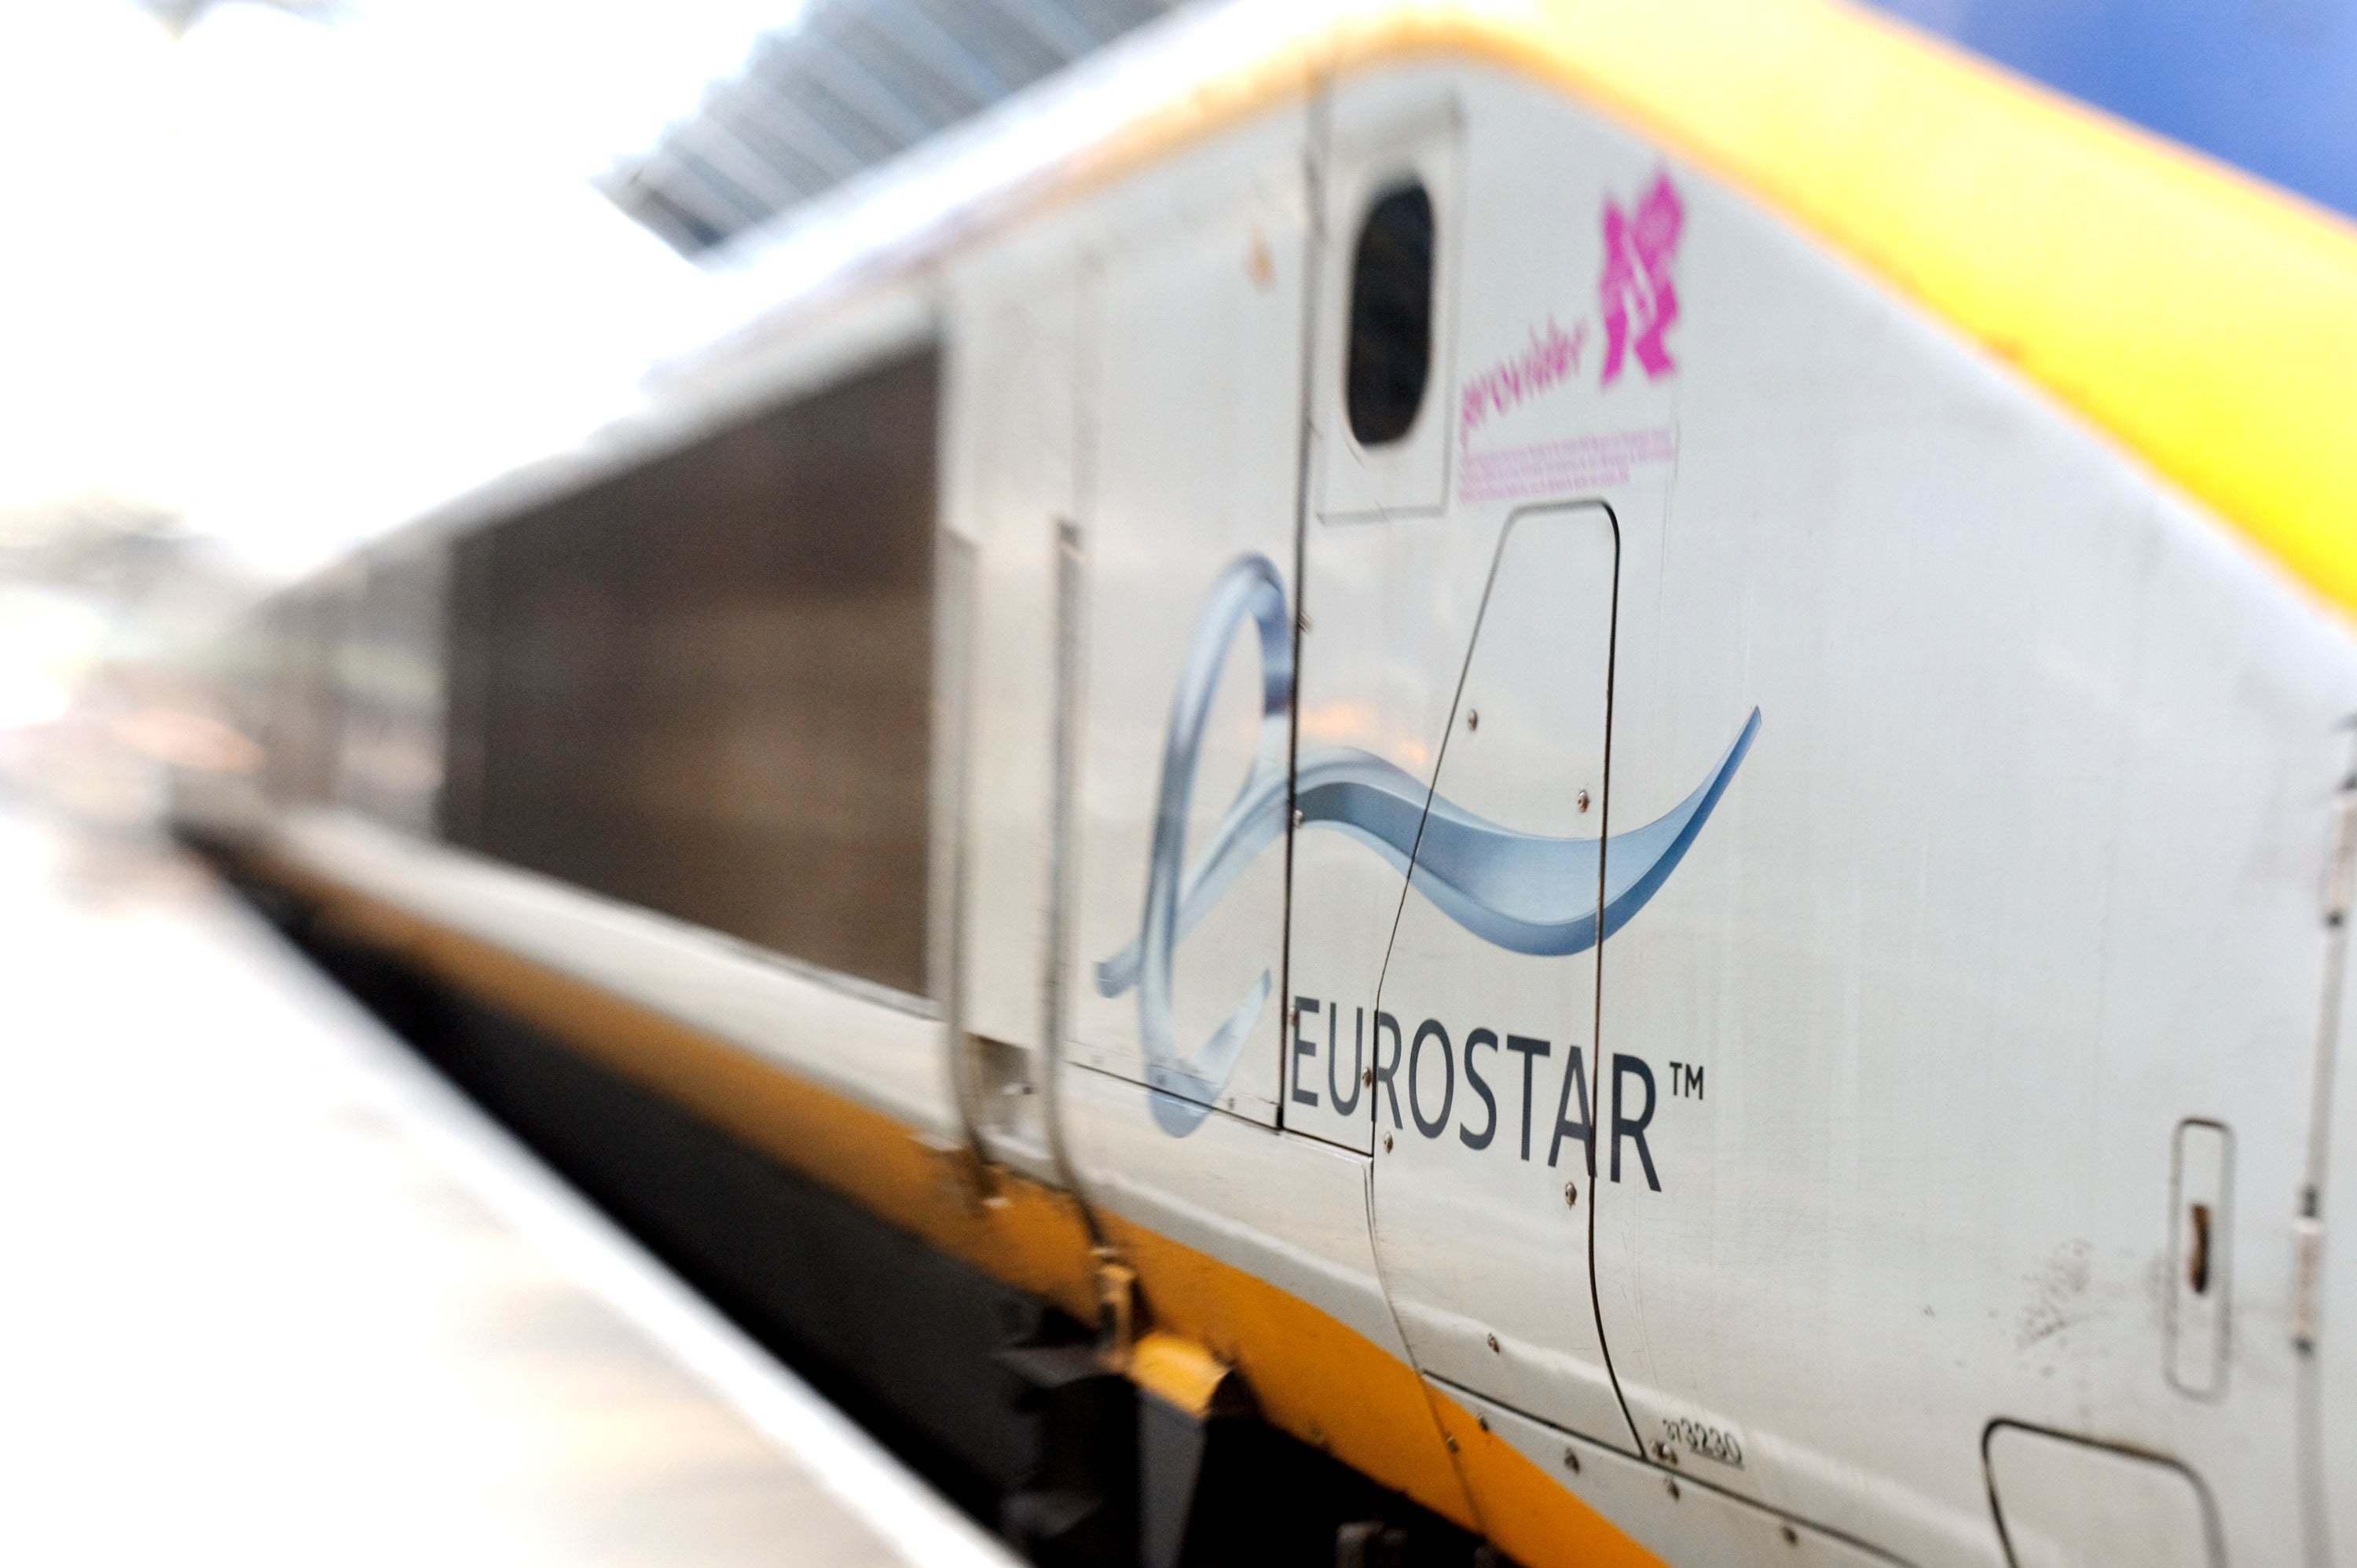 Eurostar has gone, but what's left for the UK Government to sell?